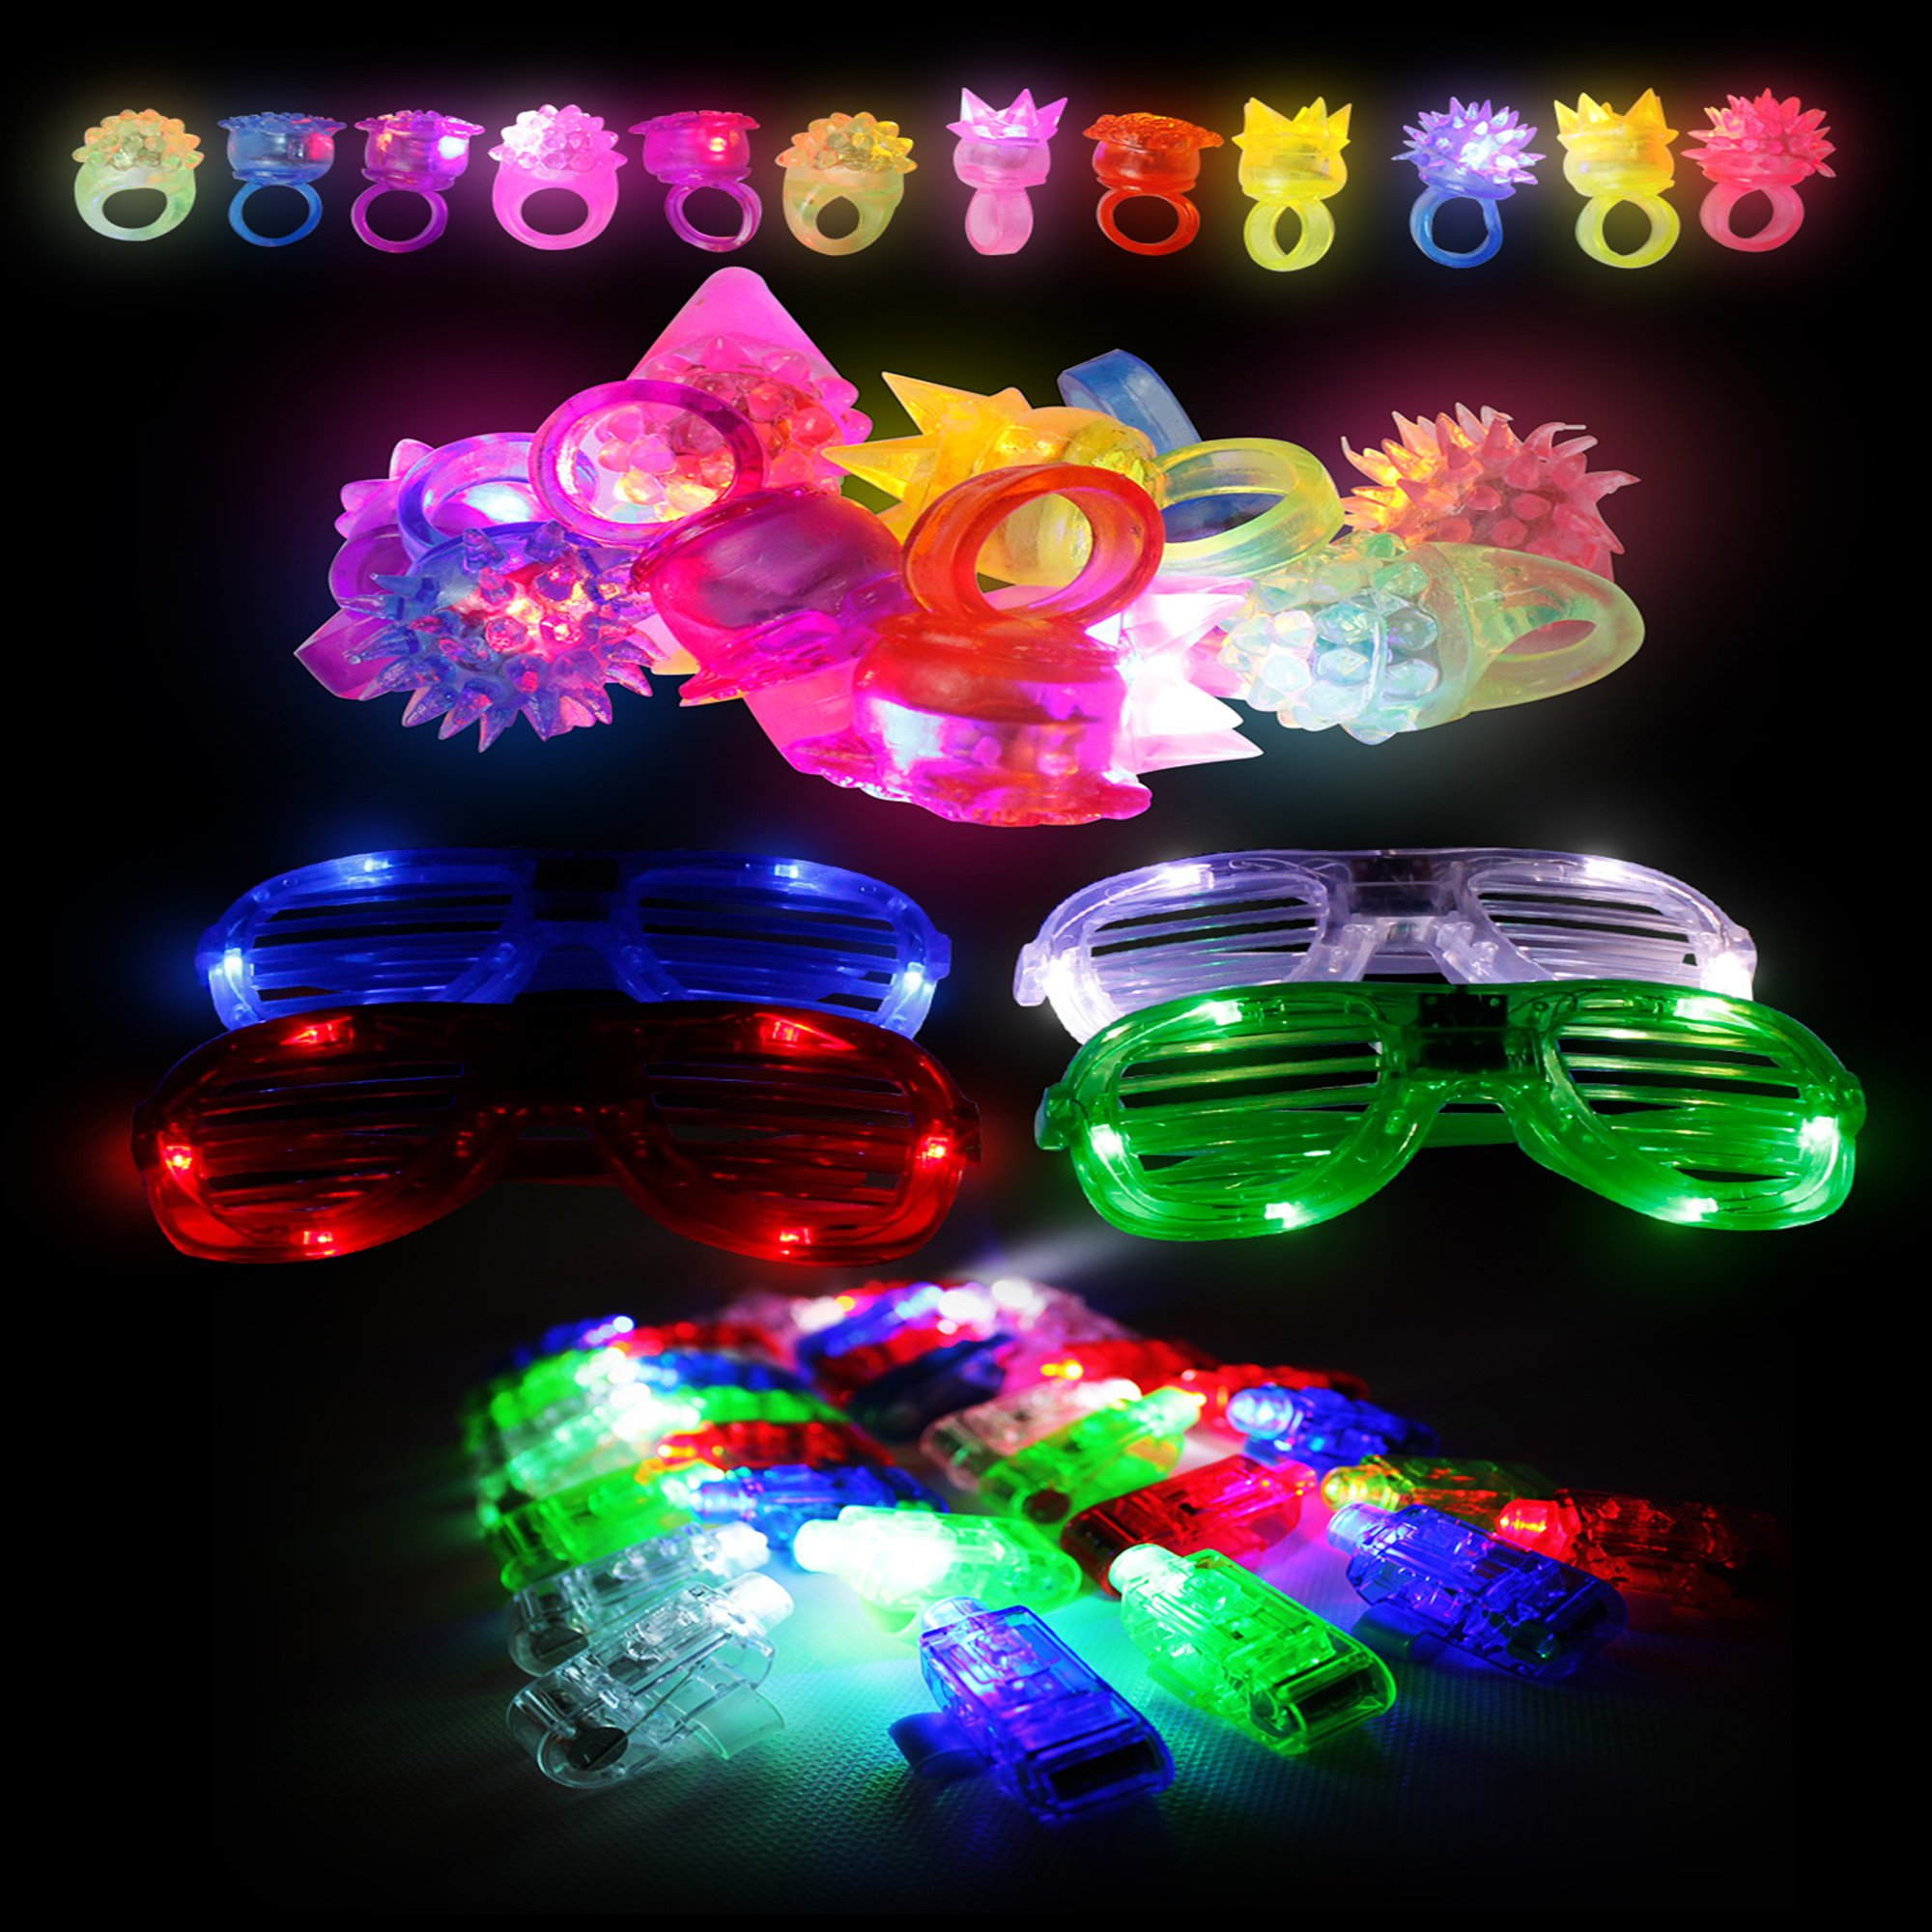 Fun Central (BC791) LED Party Pack, Party Favor Pack, Party Supplies Pack, LED Light Party Pack - LED Finger Lights Assorted 40ct, LED Jelly Rings 12ct, LED Slotted Shades - Blue,Red,Green,White